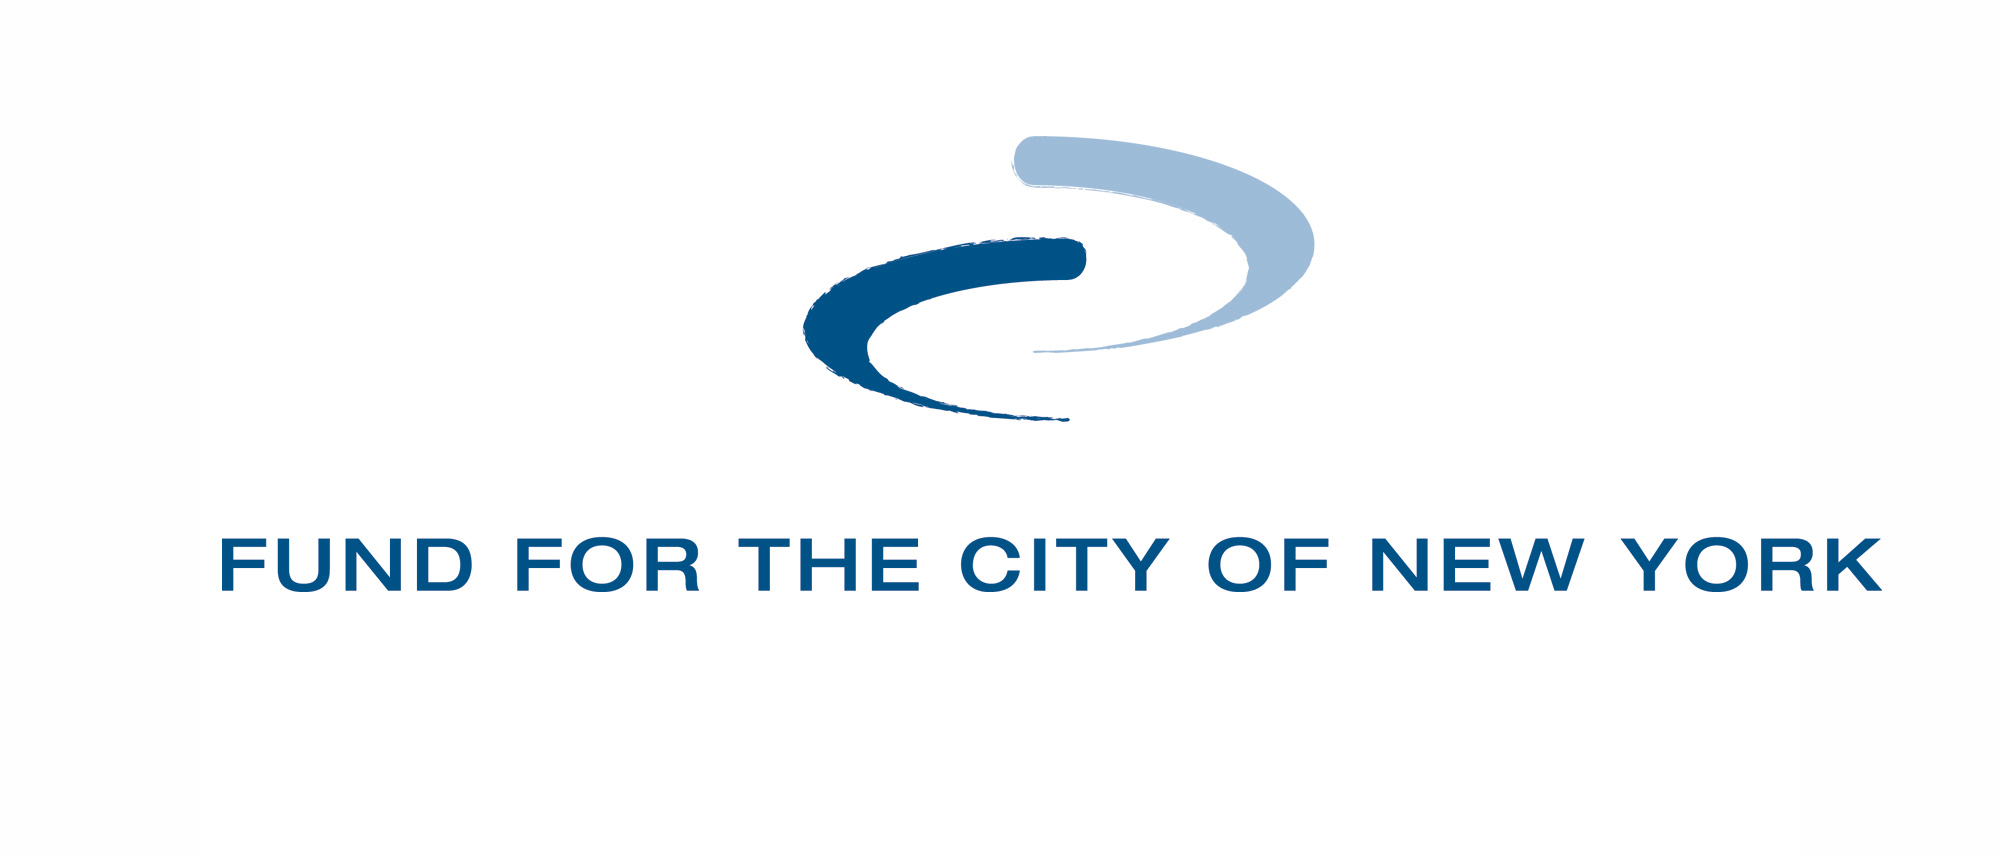 Fund for the City of New York logo